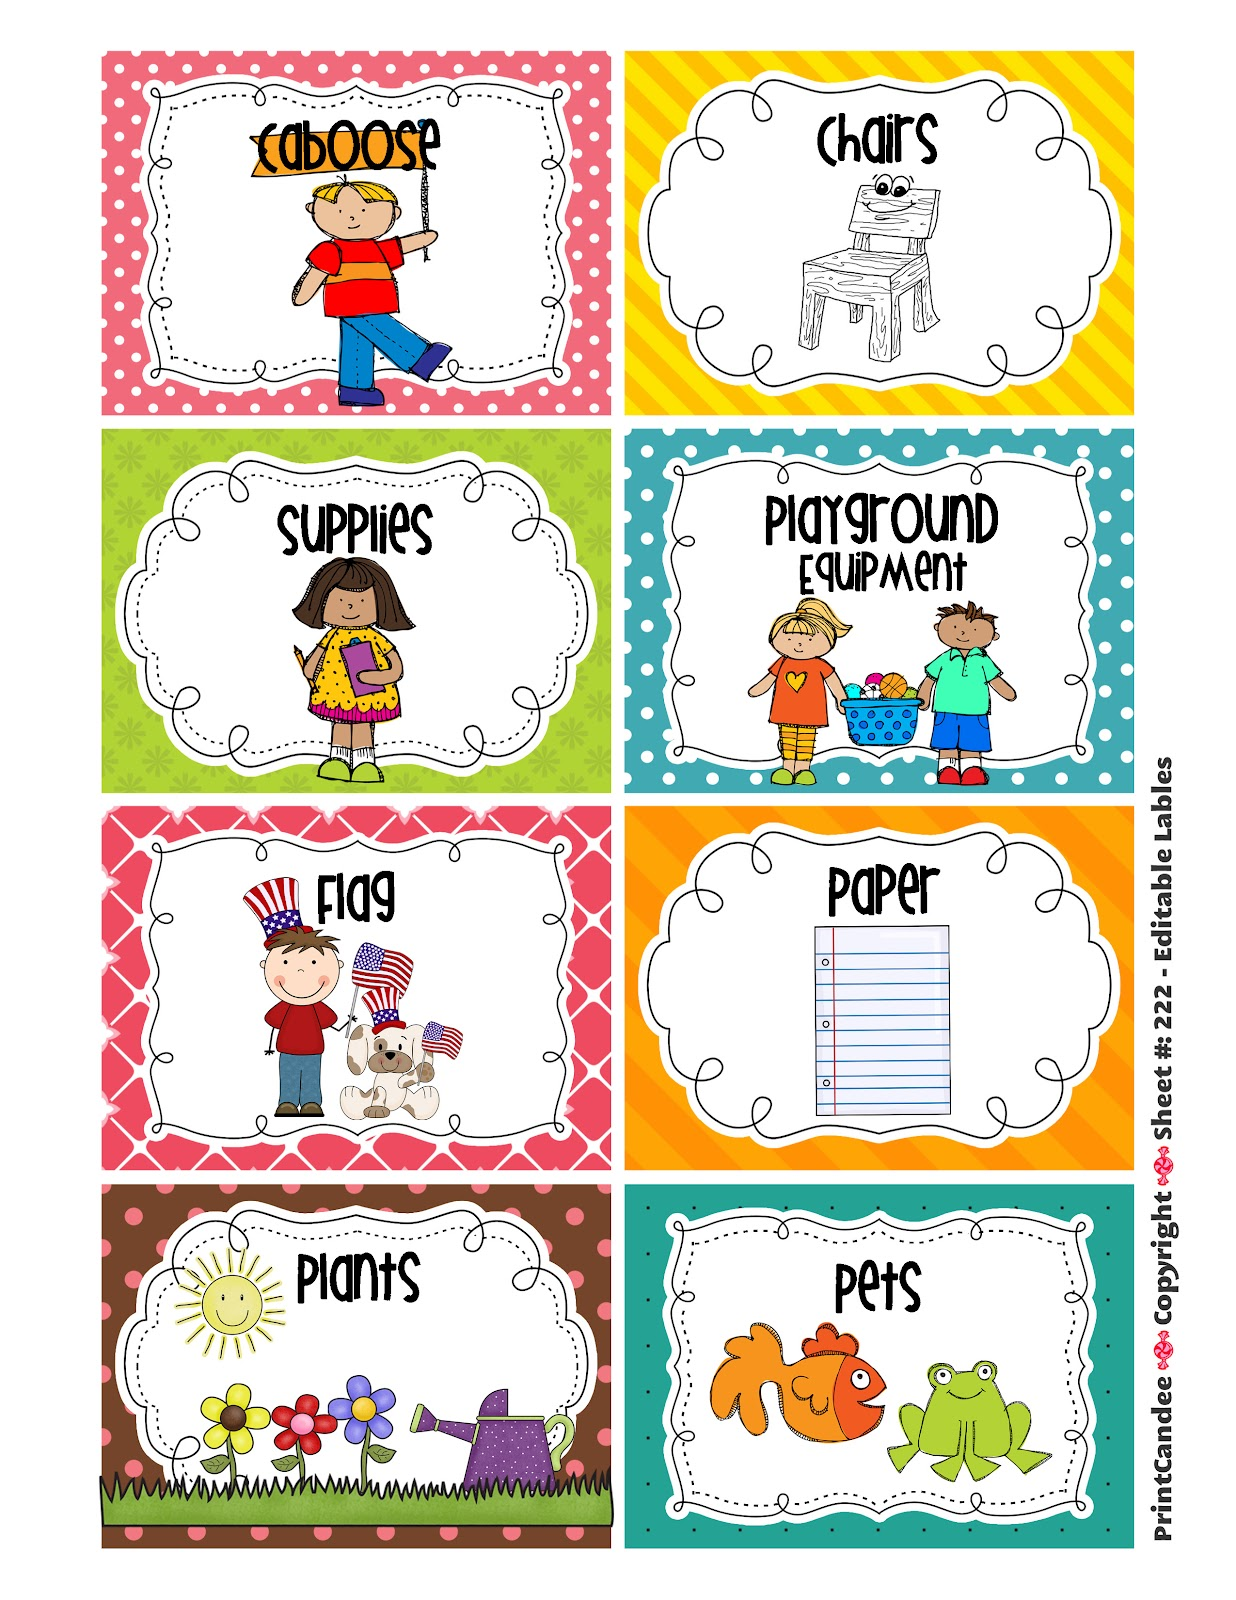 Free Classroom Helpers Cliparts Download Free Clip Art Free Clip Art On Clipart Library